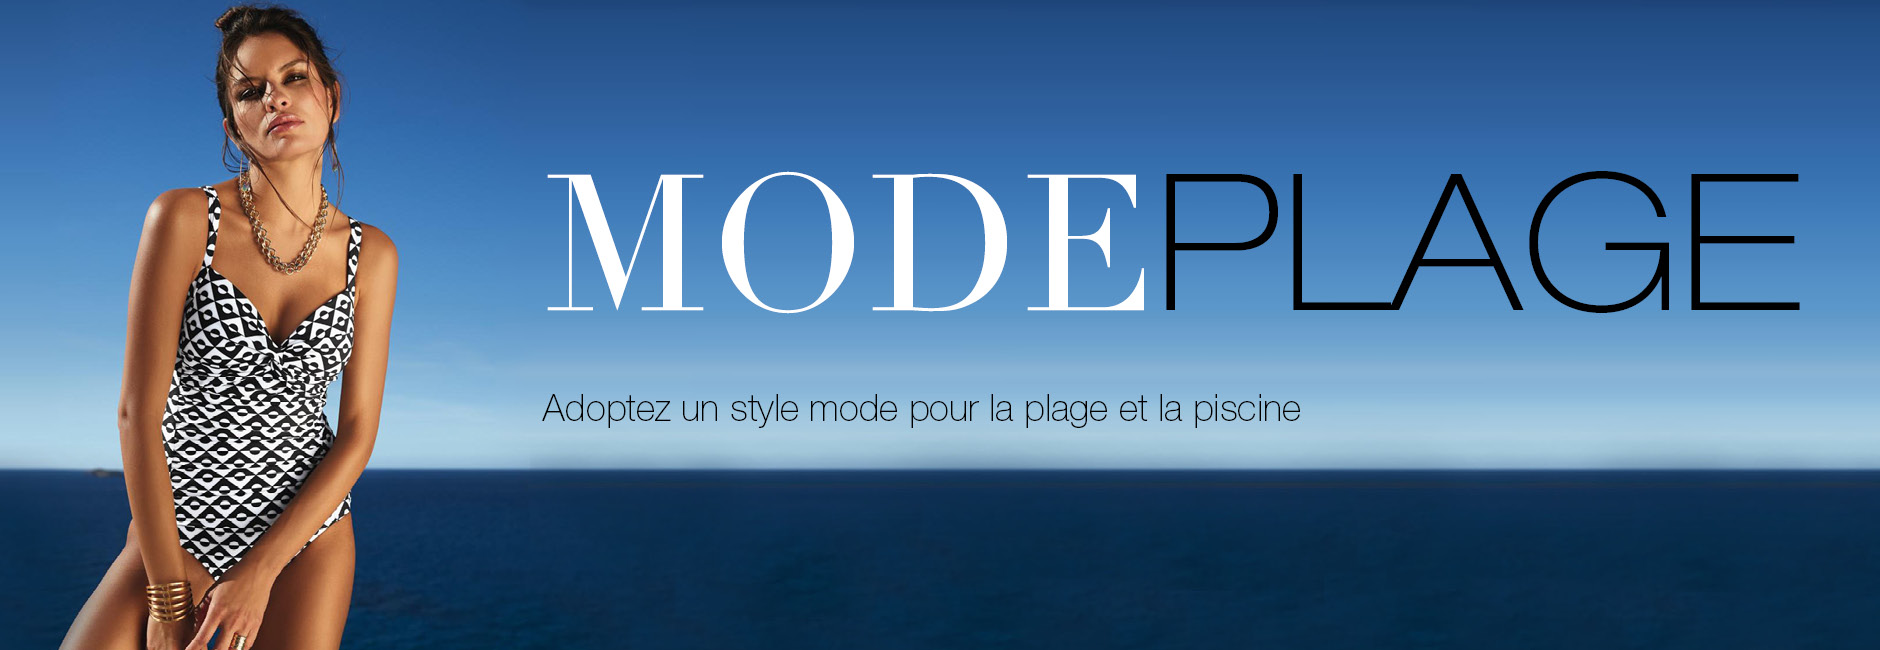 Mode plage